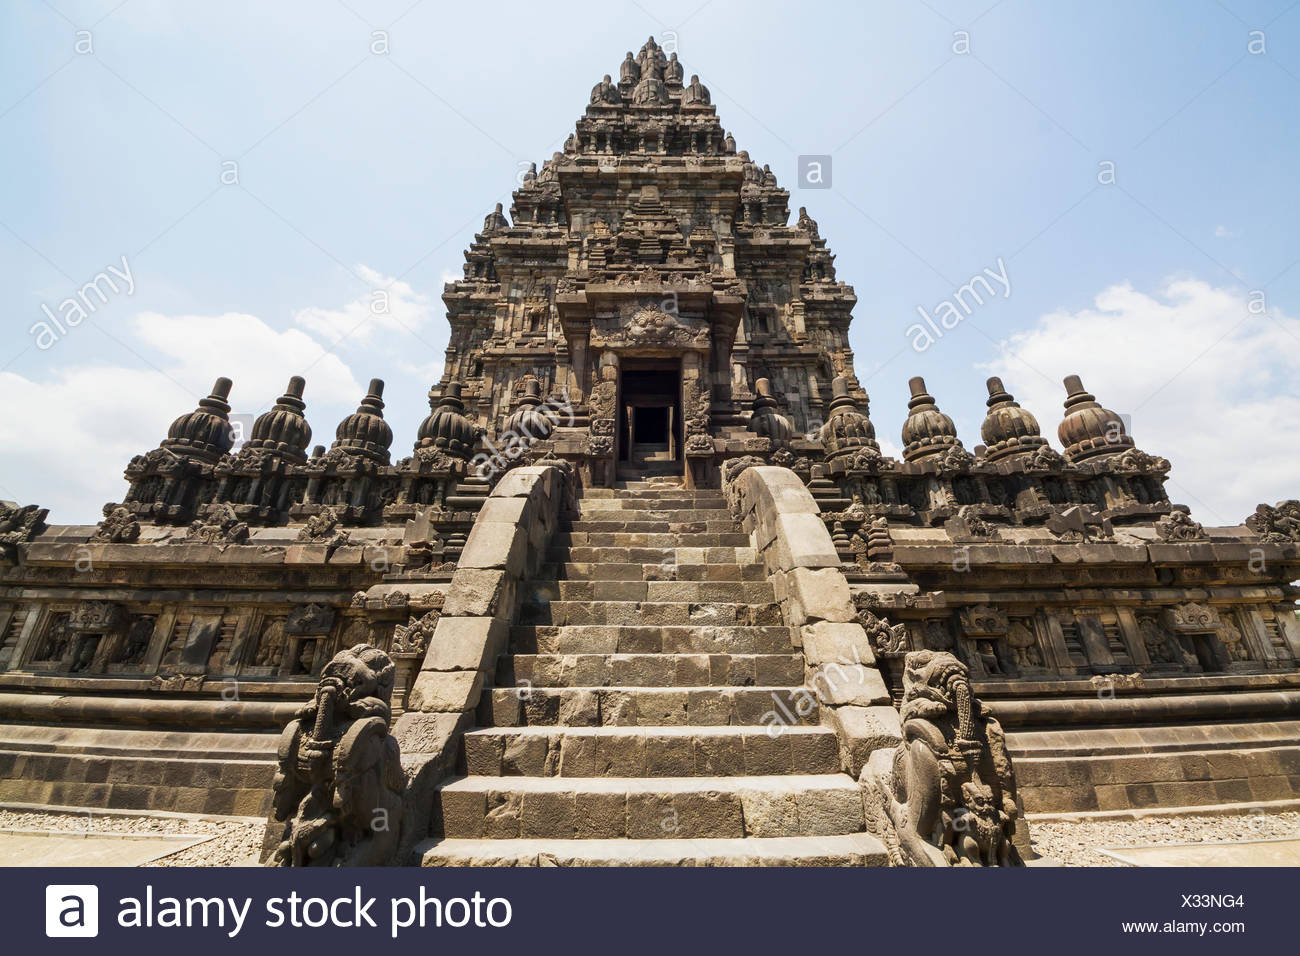 Shiva temple, dating to the 9th century, Prambanan Temple Compounds, Central Java, Indonesia - Stock Image